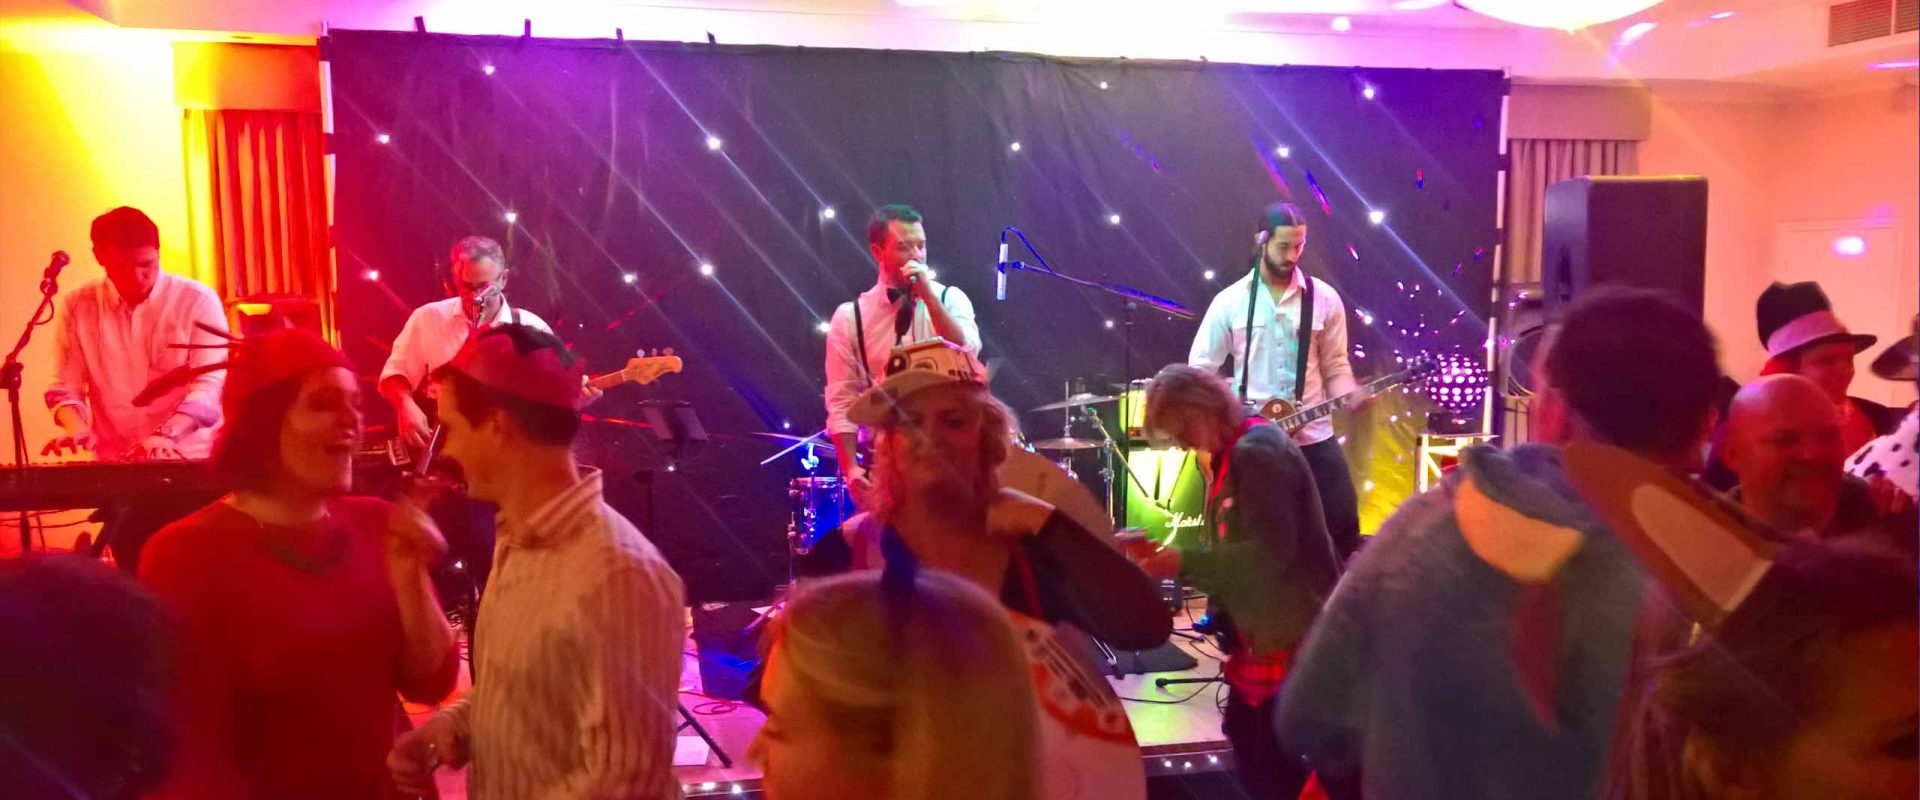 mirrorball wedding band surrey